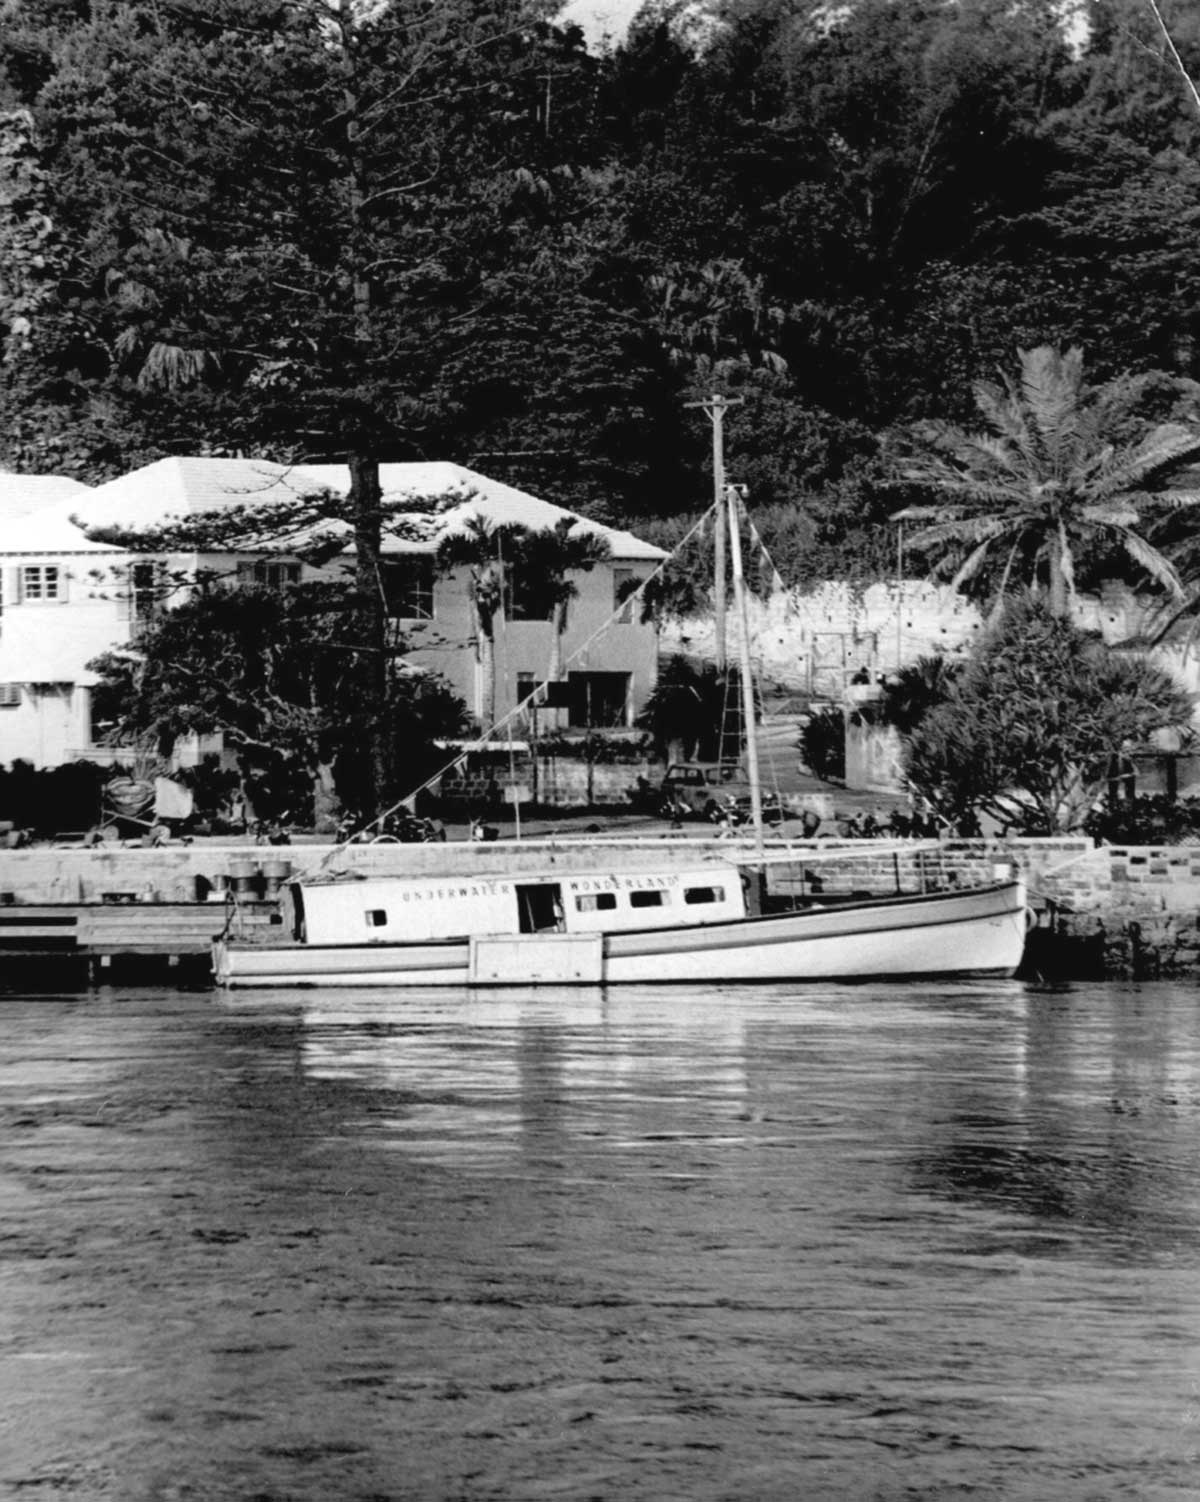 Photo of helmet diving vessel of Hartley's Underwater Wonderland Reef Cruises in Flatts Village in the 1960's